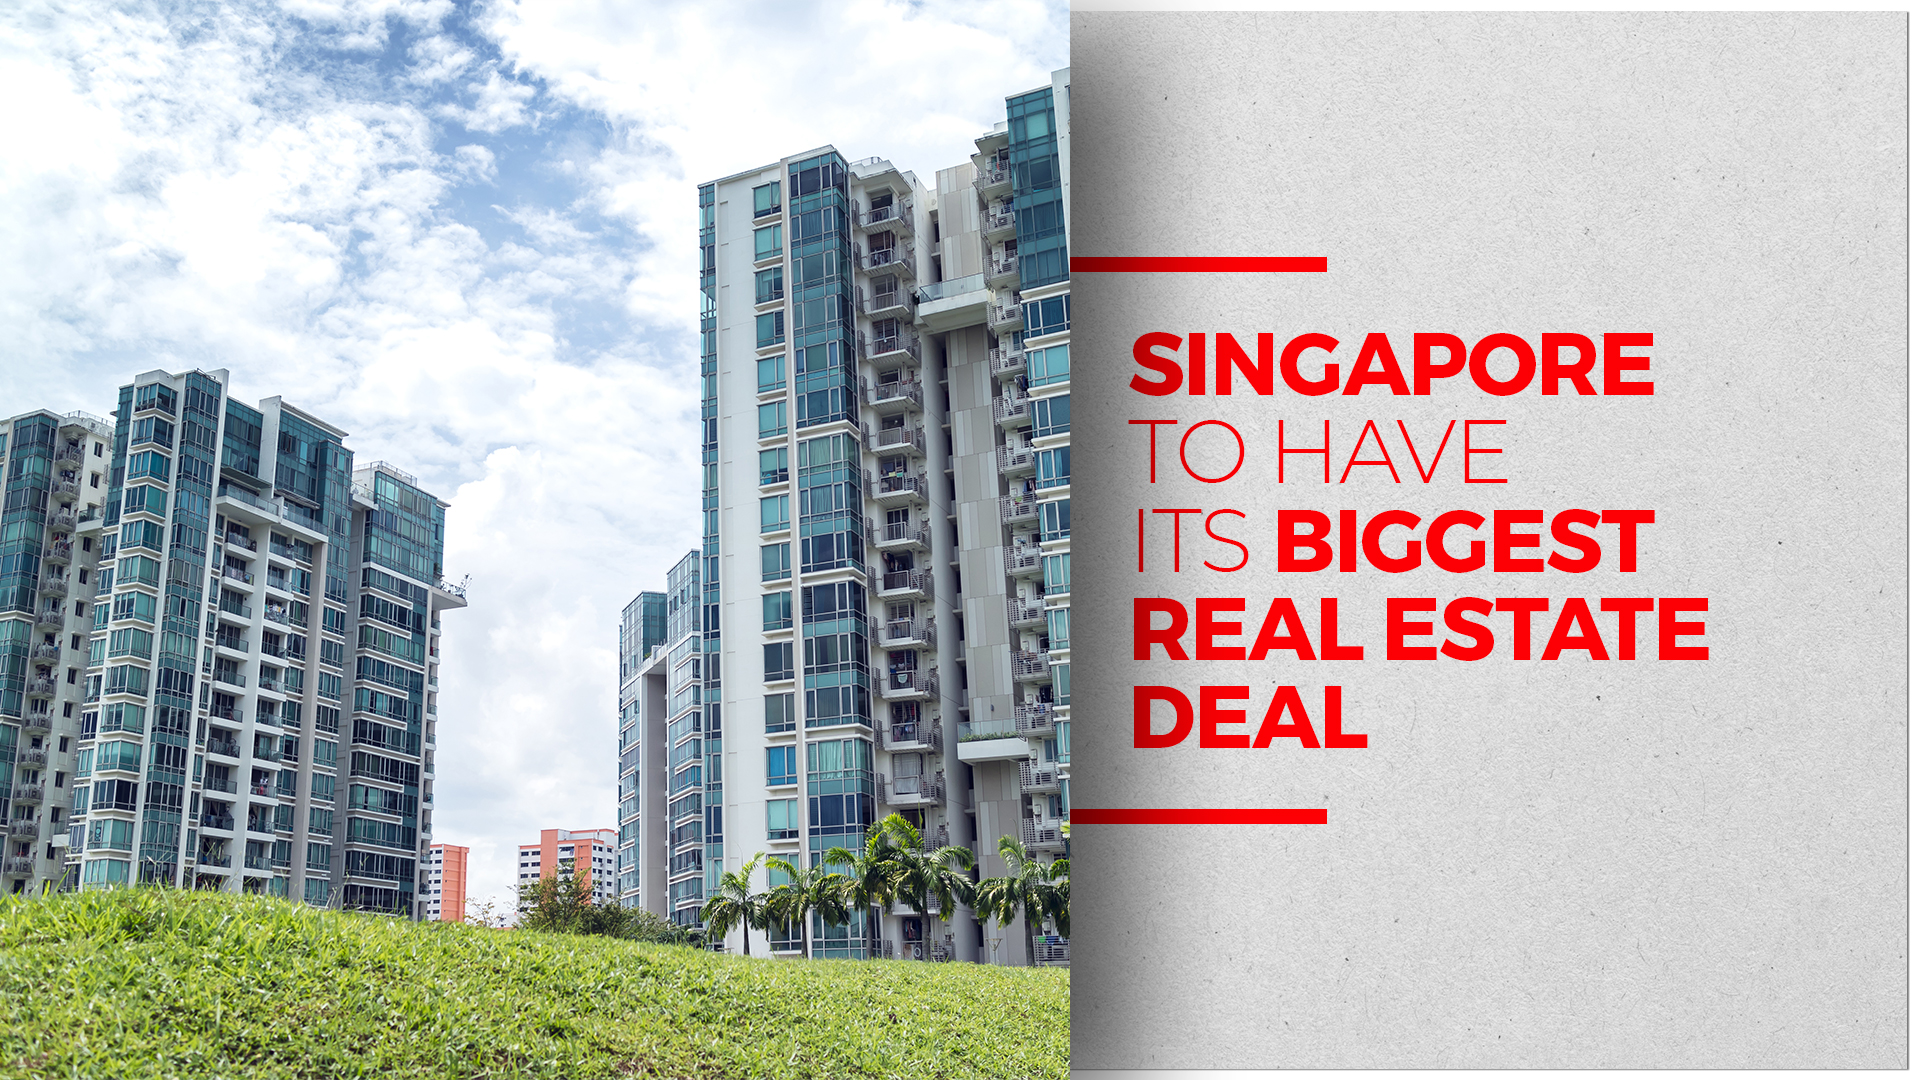 CapitaLand In Talks To Buy Real Estate Group Ascendas-Singbridge